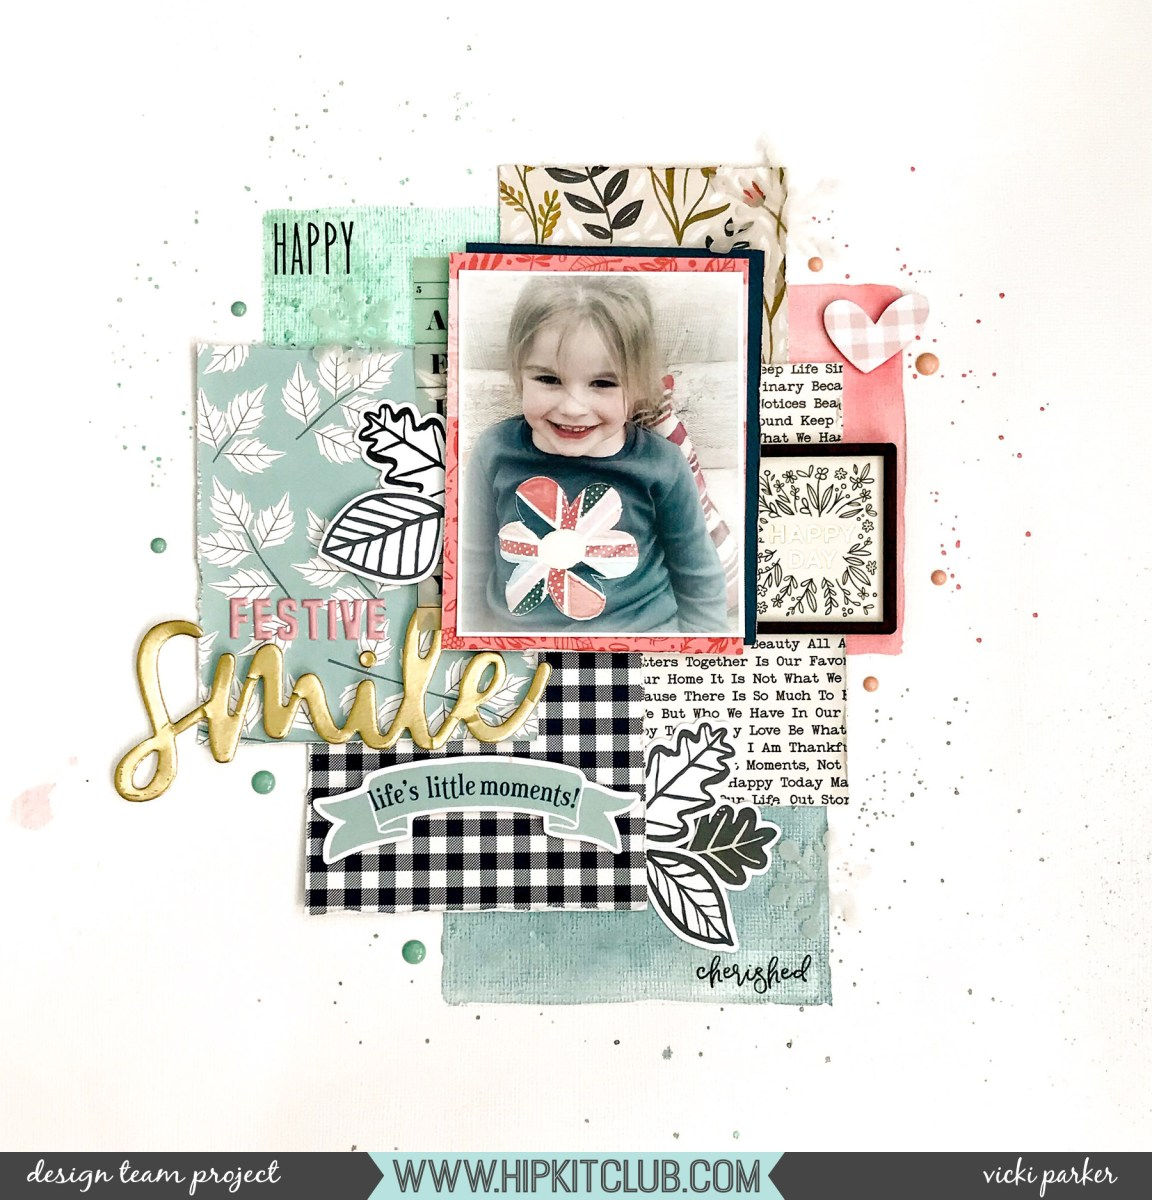 Festive Smile - holiday layout using the November kit | Vicki Parker